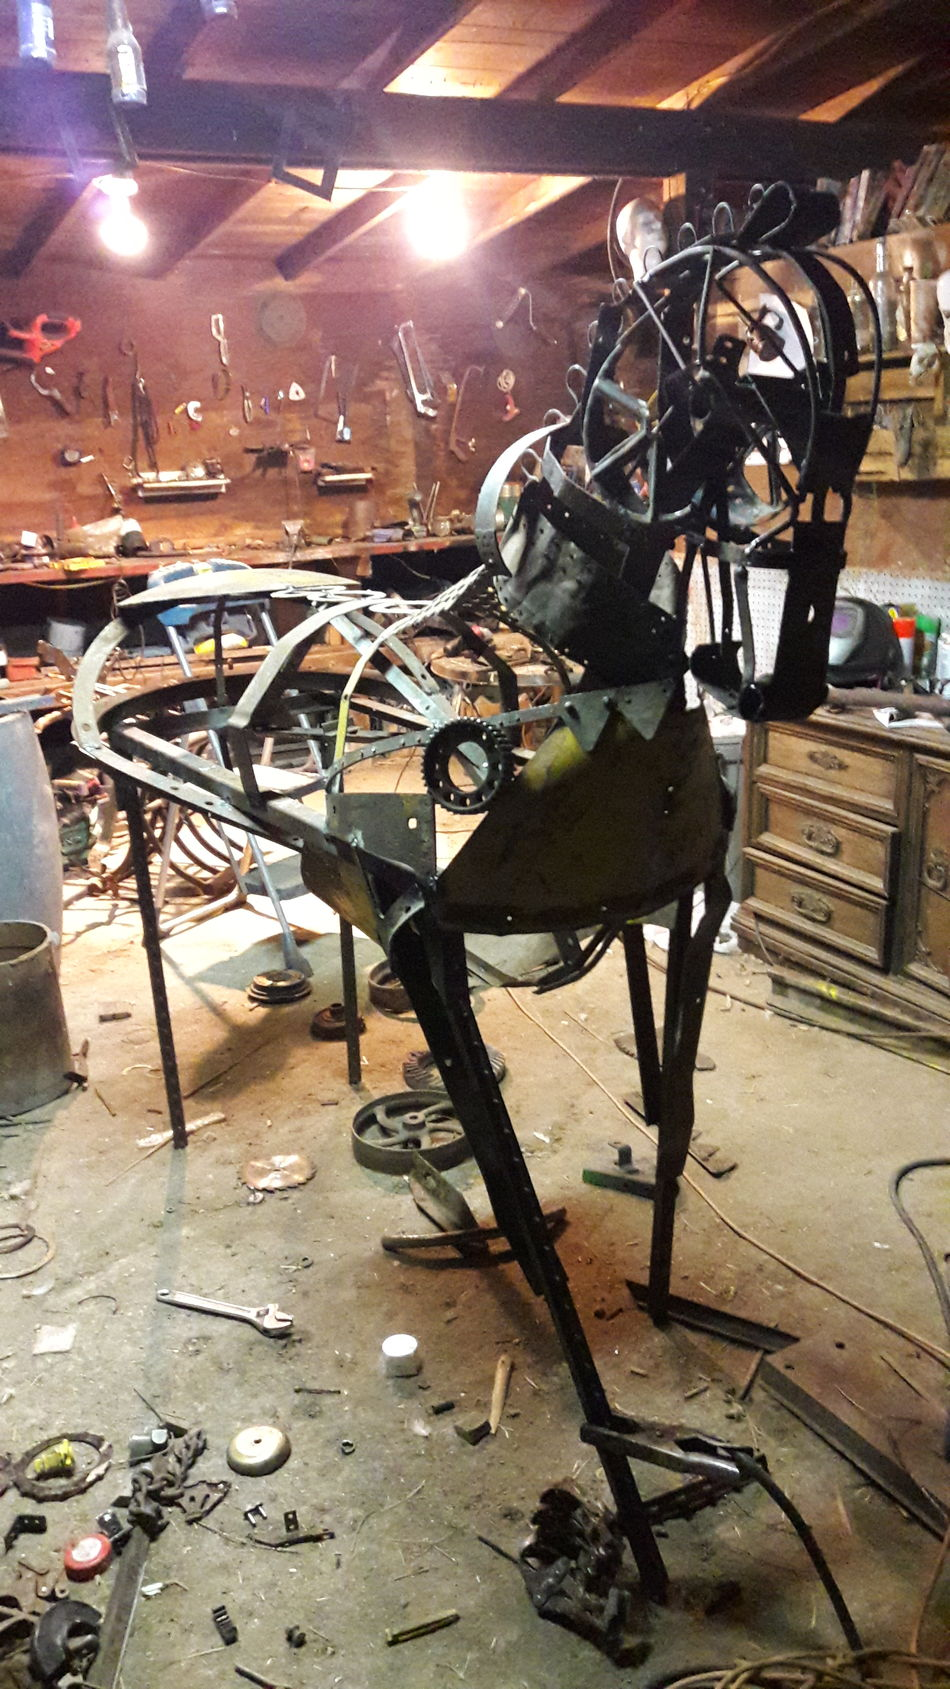 My new project afull sized Horse 6ft+ tall made from Scrap Metal ArtWork Transportation Mode Of Transport Working Animal Horse Horse Cart Livestock Domestic Animals Upcycling Recycle Vintage Artsy Artistic Expression Animal Themes No People Barnlife WOW Farm Life Equinelife Equine Horse <3 Horse